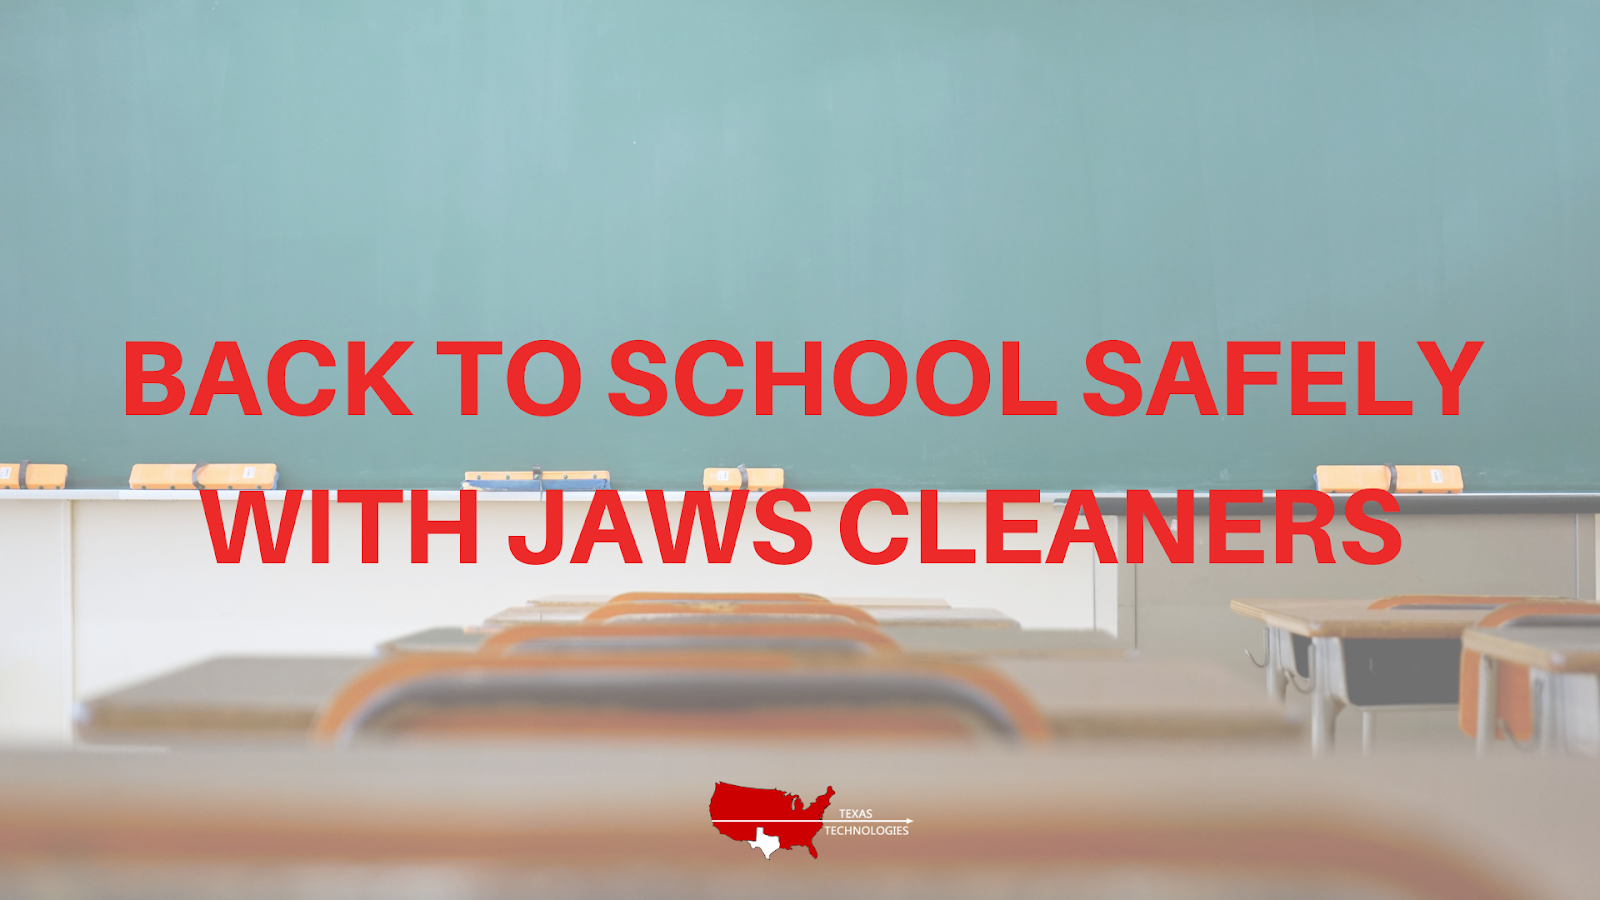 Back to School Safely with JAWS Cleaners